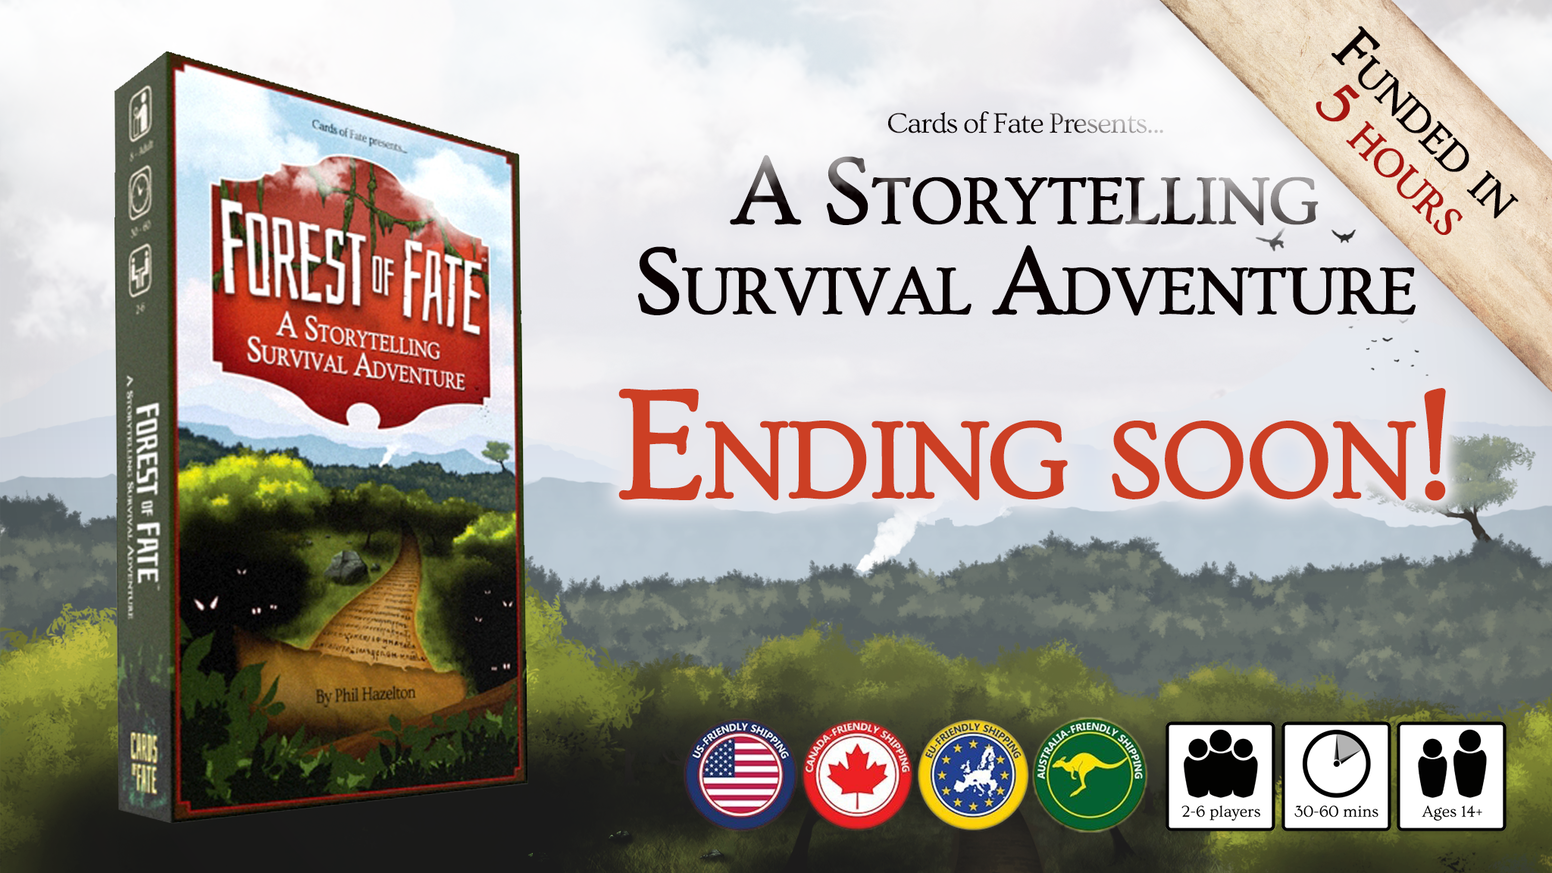 Storybook game for 2-6 adventurers. Use teamwork and tough decisions to find your fate and make it home with the tale of a lifetime.